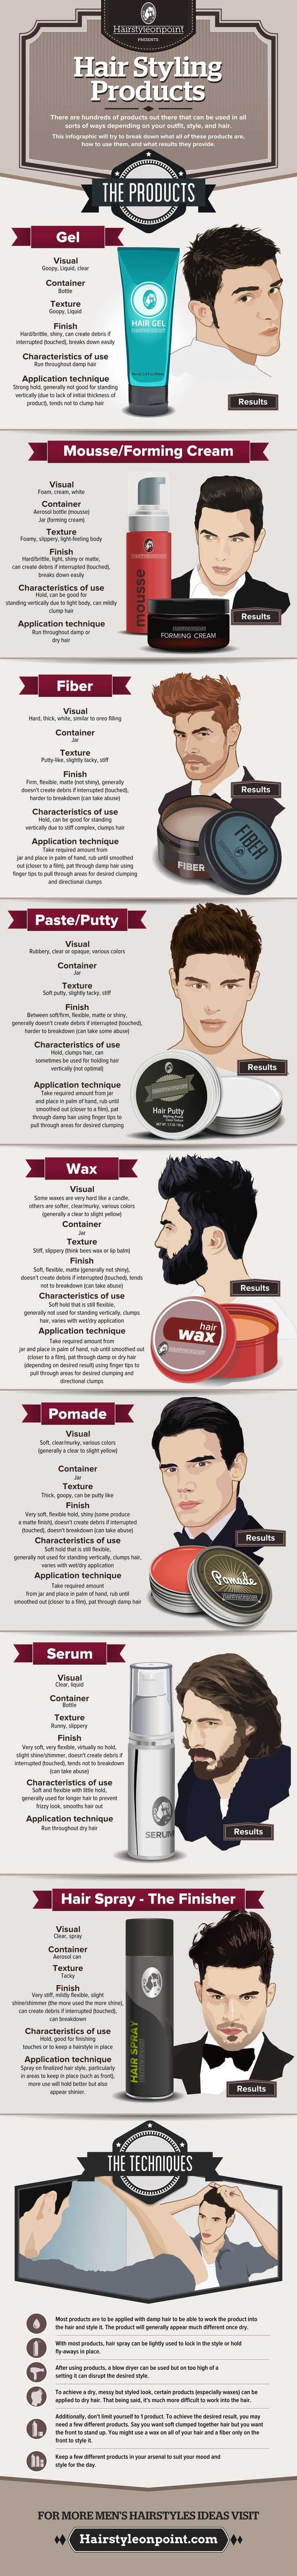 Simple Guide To Men's Hairstyling Products and How To Use Them [Infographic]